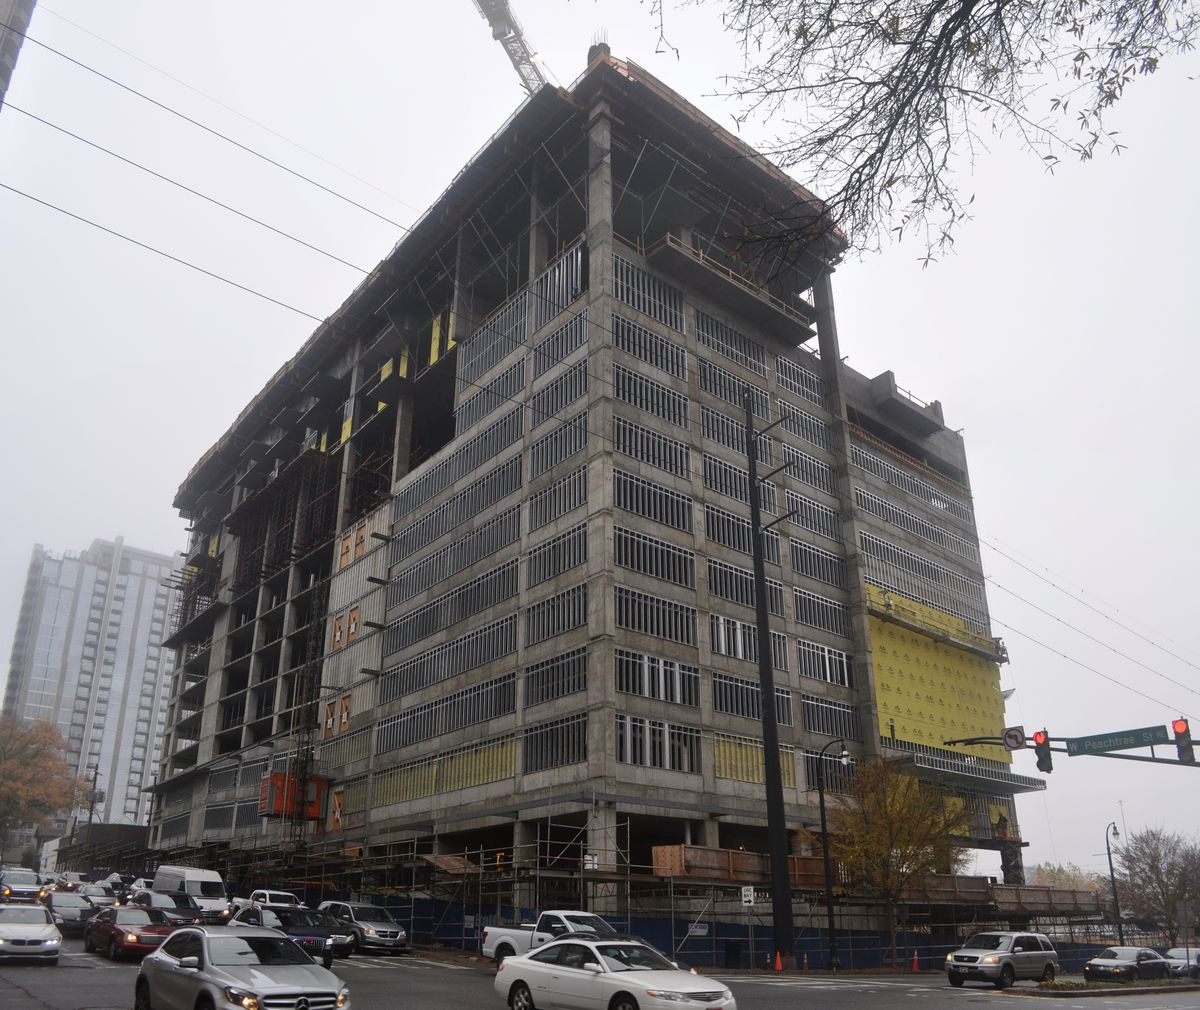 Construction of two blank walls proceeds, looming over the intersection of West Peachtree and 14th streets.